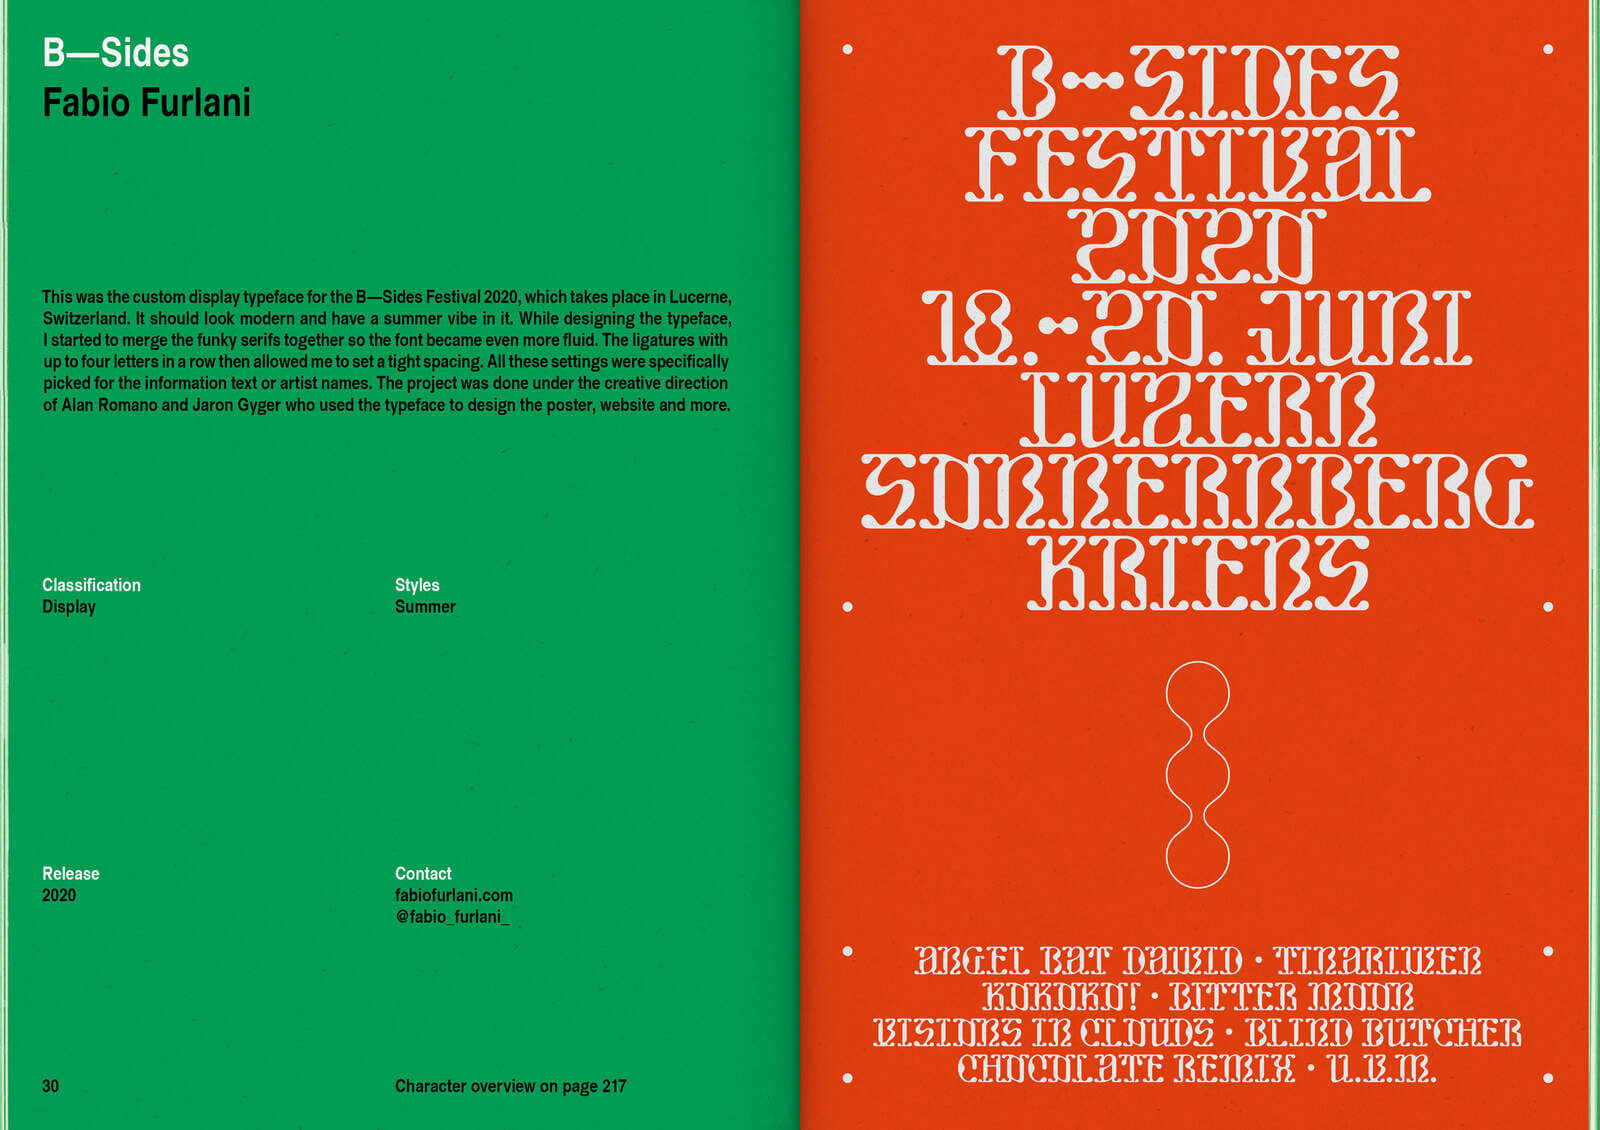 New Aesthetic 2: A Collection of Independent Type Design 8